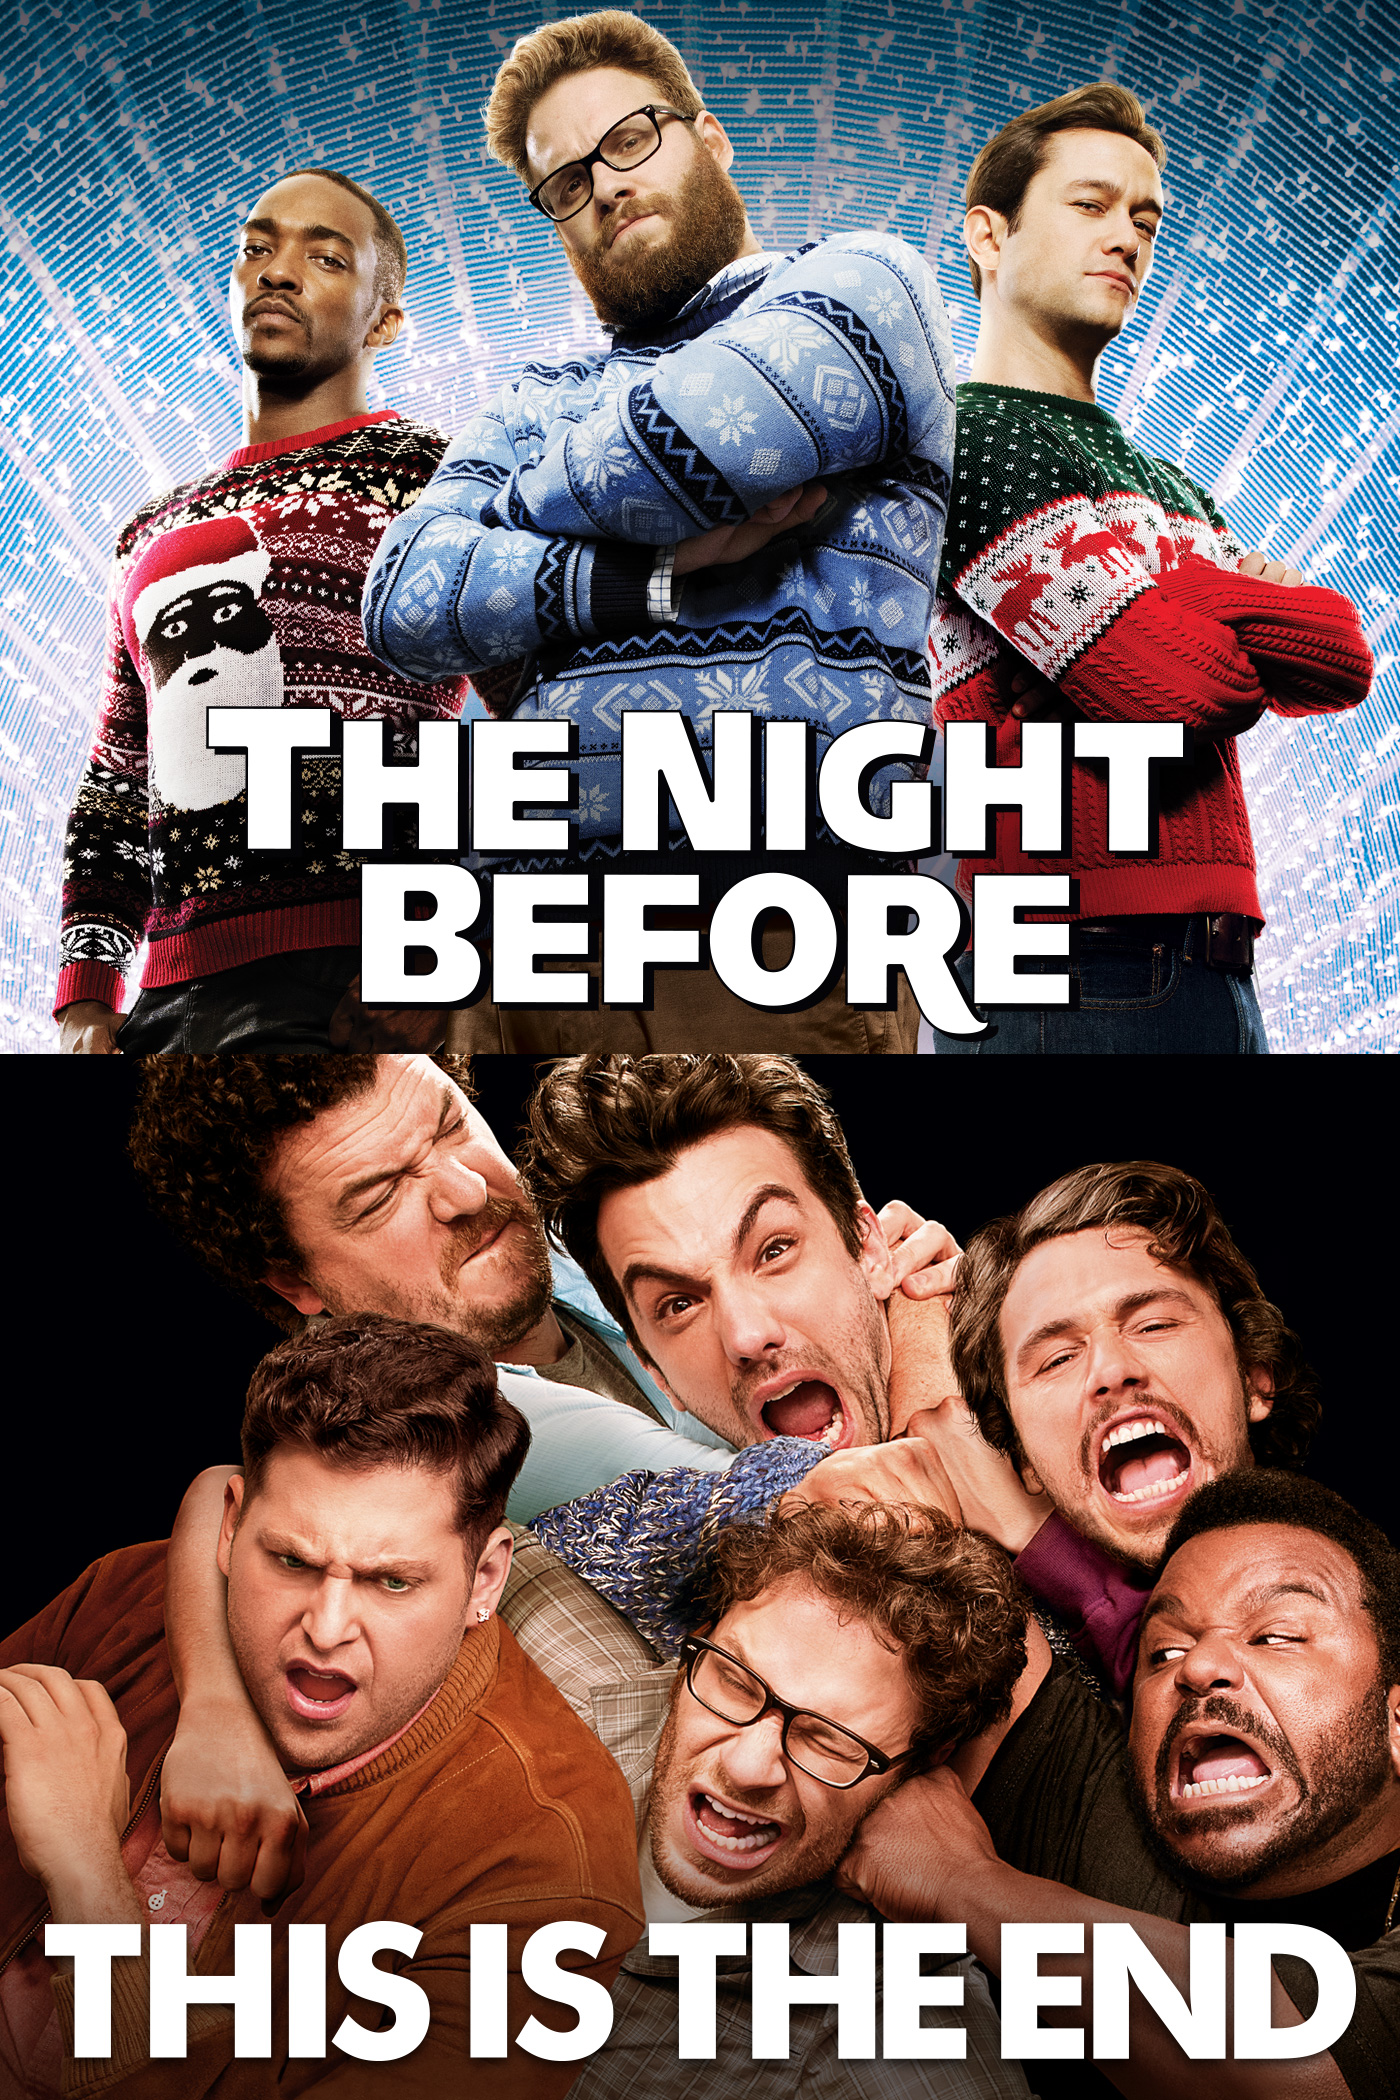 The Night Before / This is the End